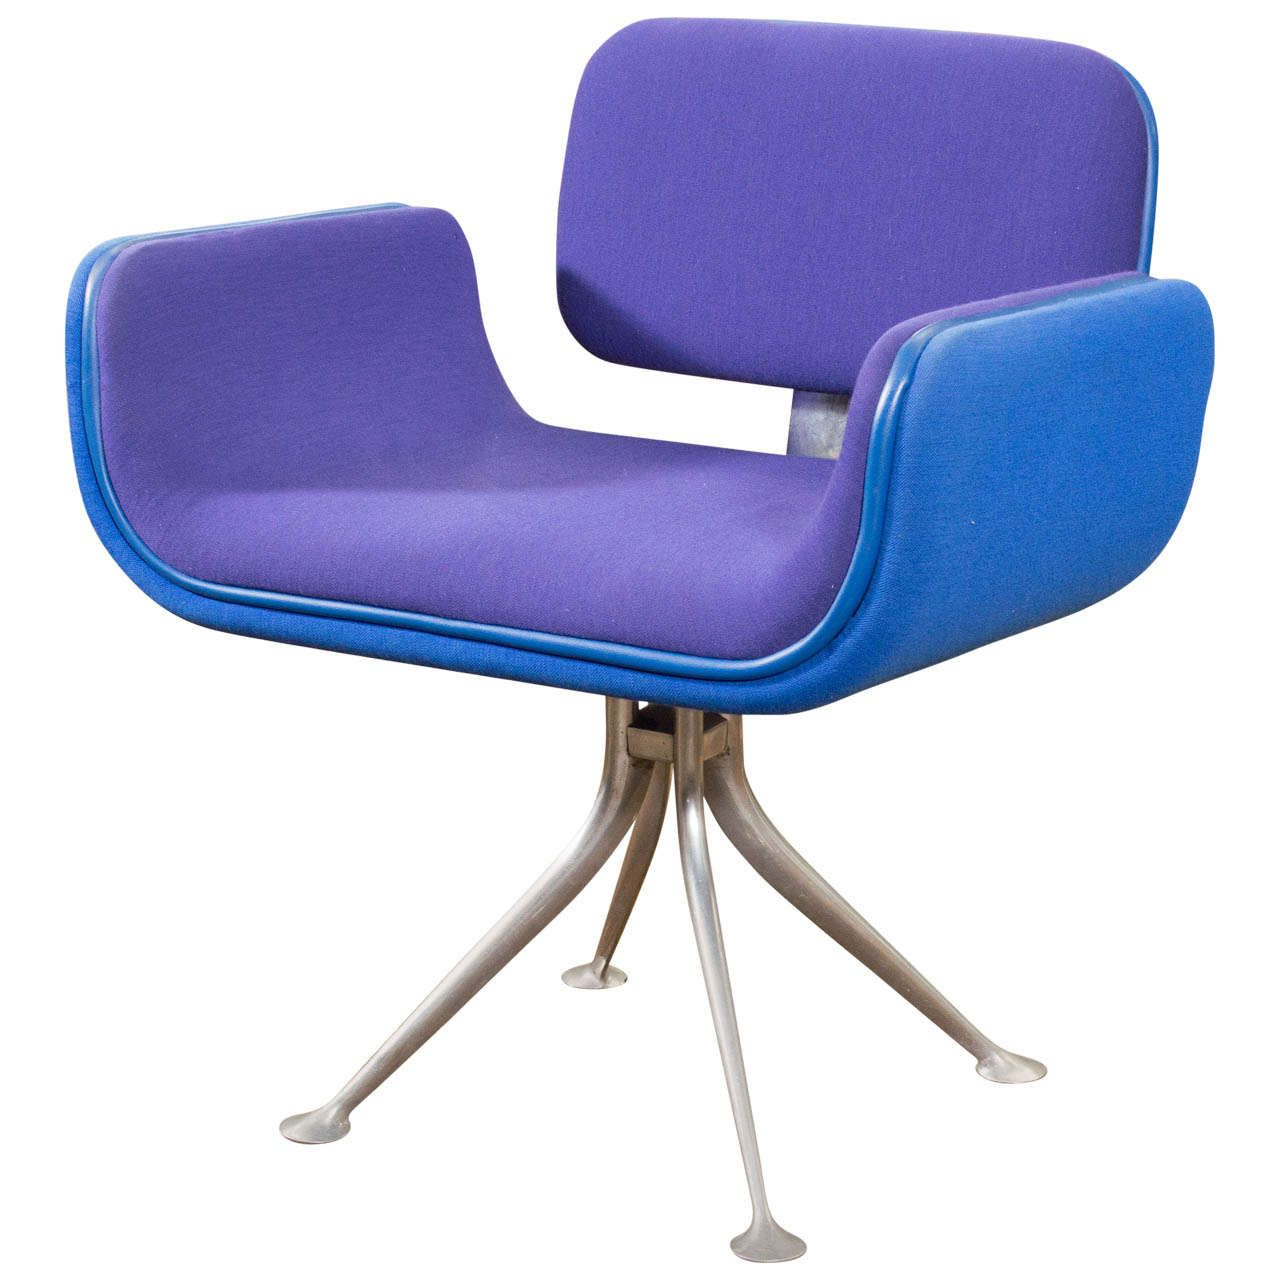 Unique Armchairs Alexander Girard Armchair From A Unique Collection Of